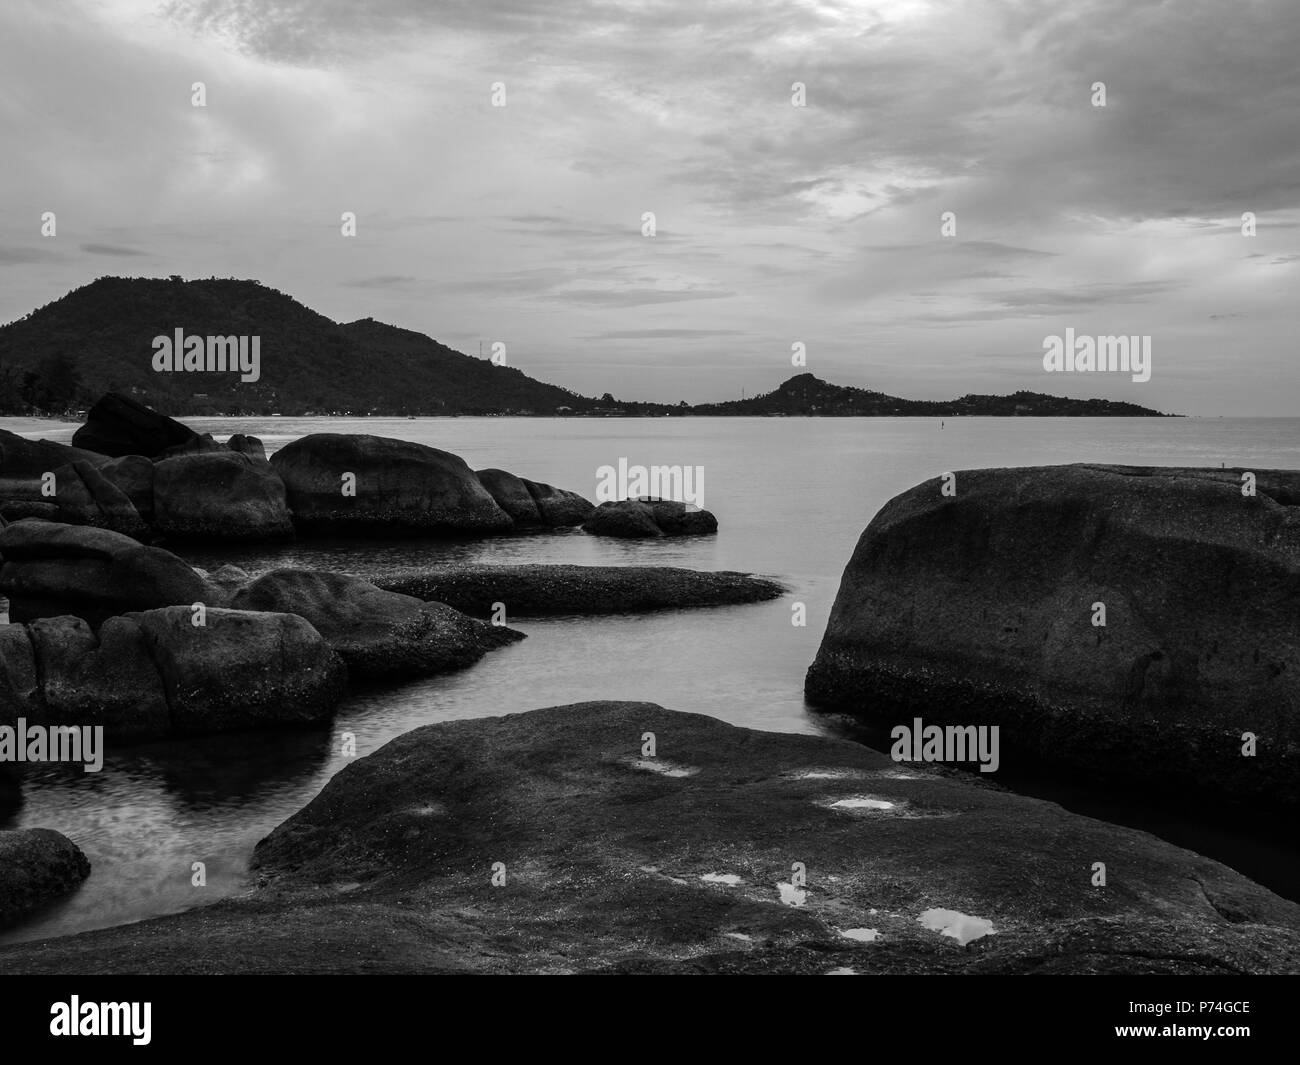 Large rocks near sea shore with the distant land. Black and white - Stock Image